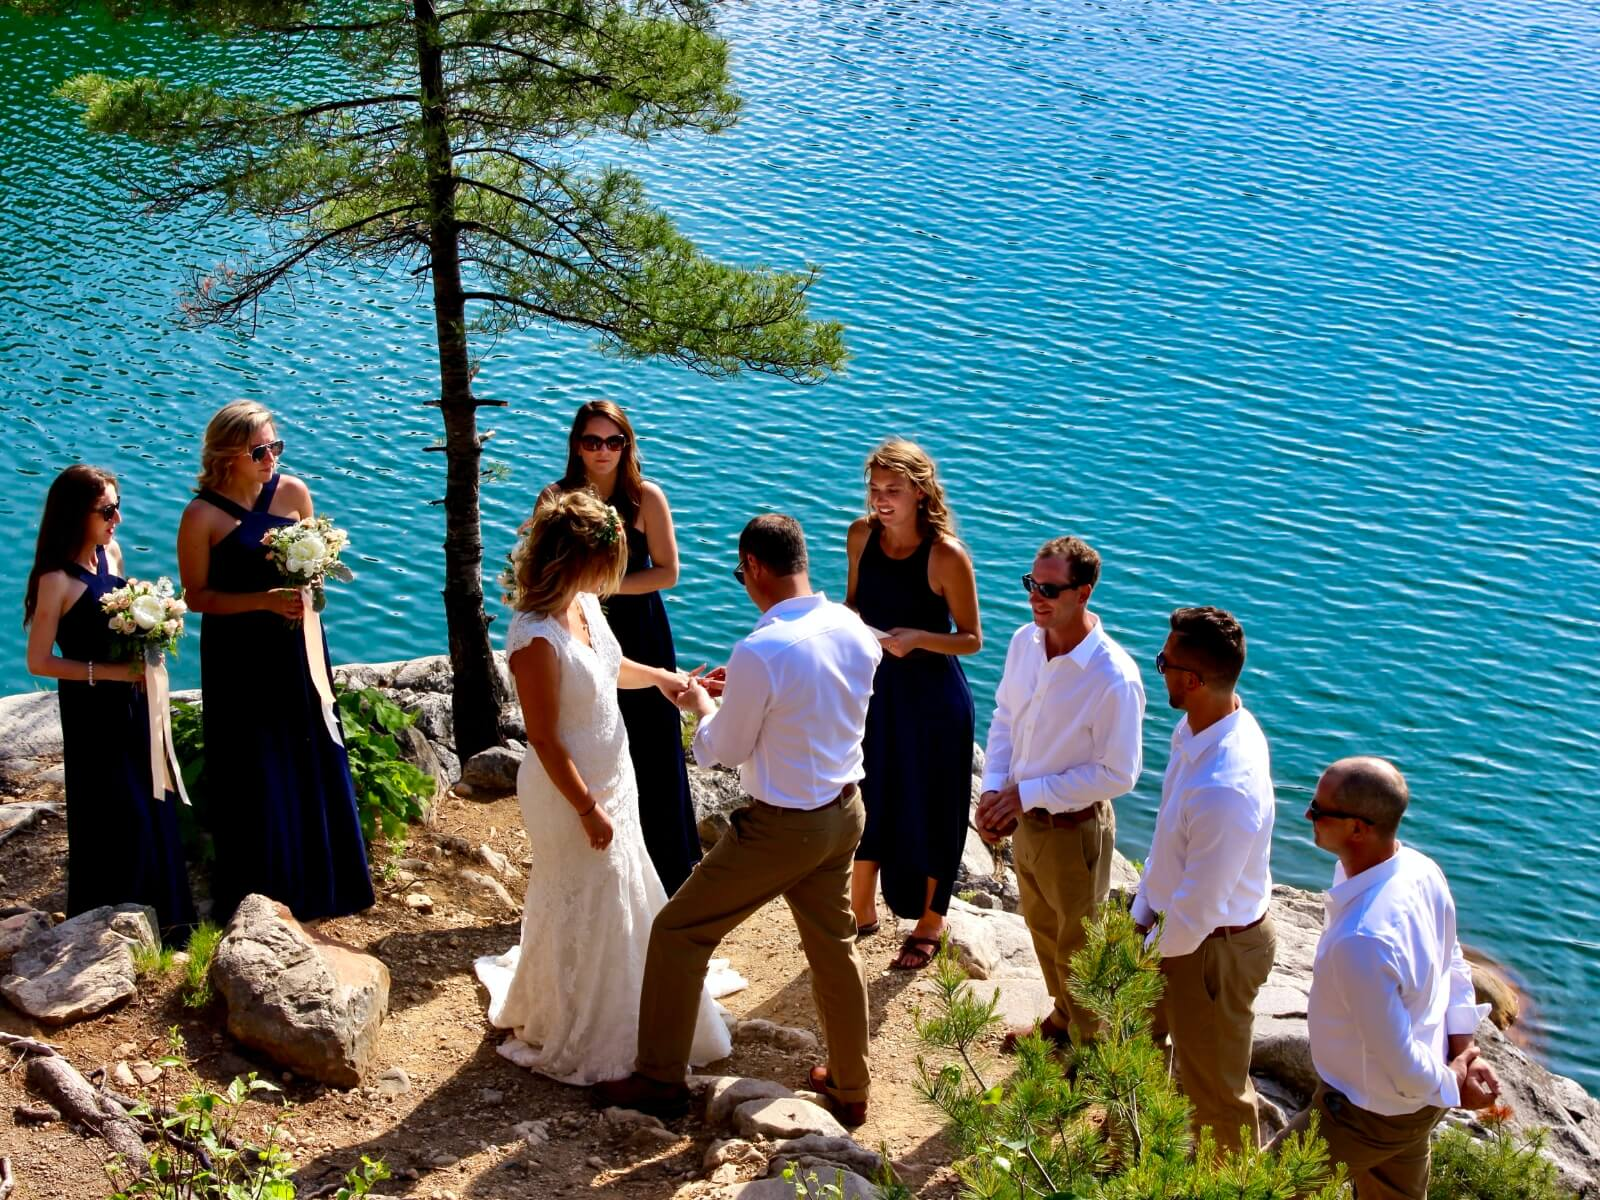 Private wedding ceremony at stunning Lake Topaz.